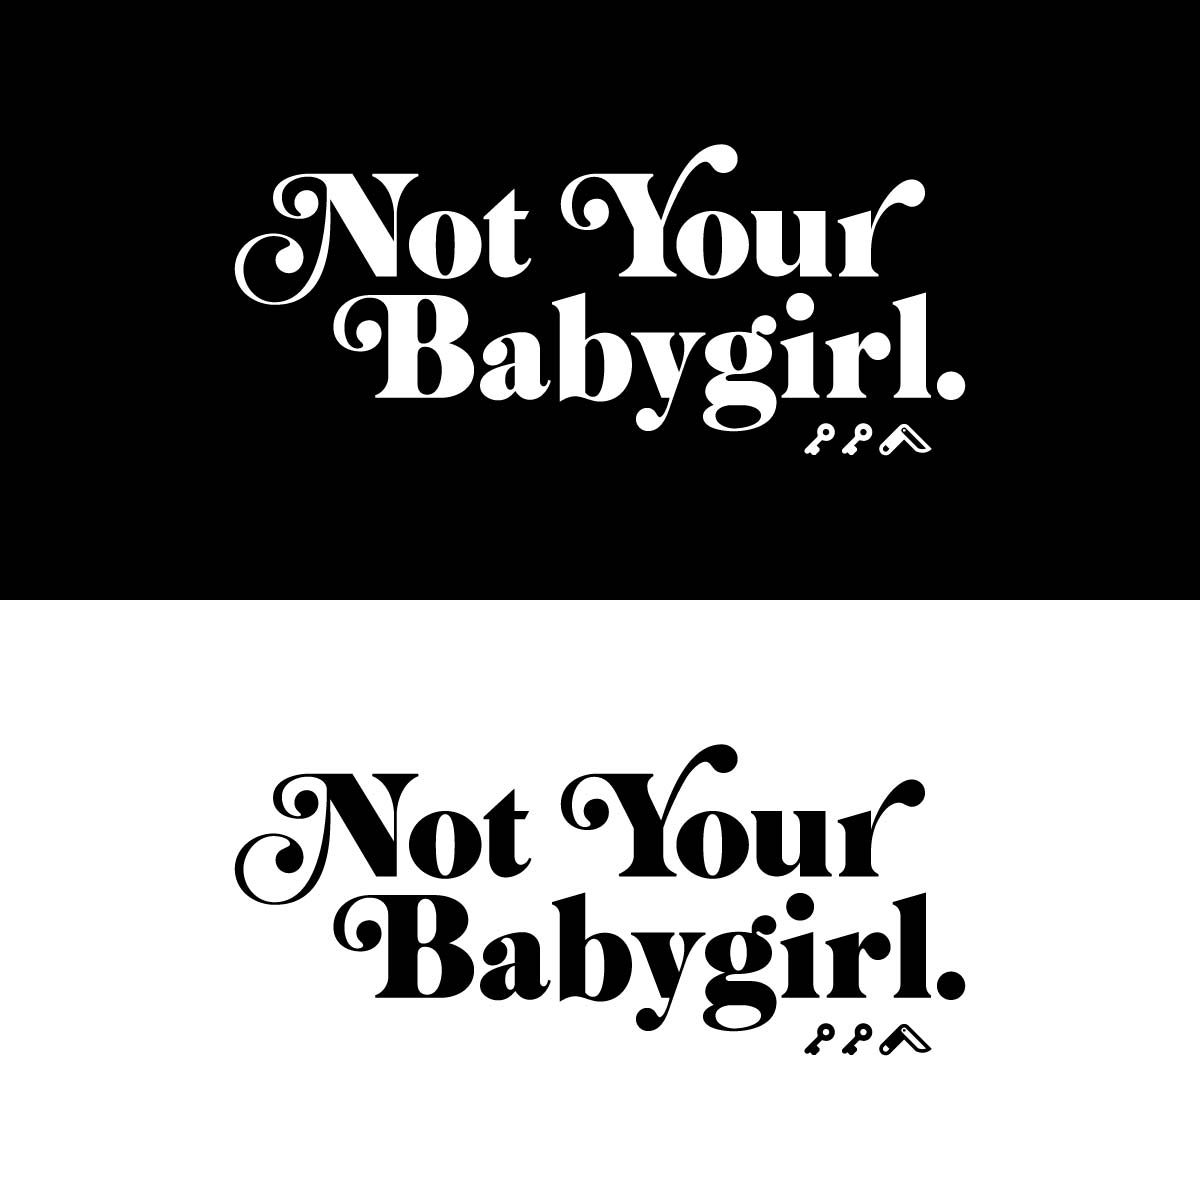 NOT YOUR BABYGIRL triblend t-shirts by kikicutt